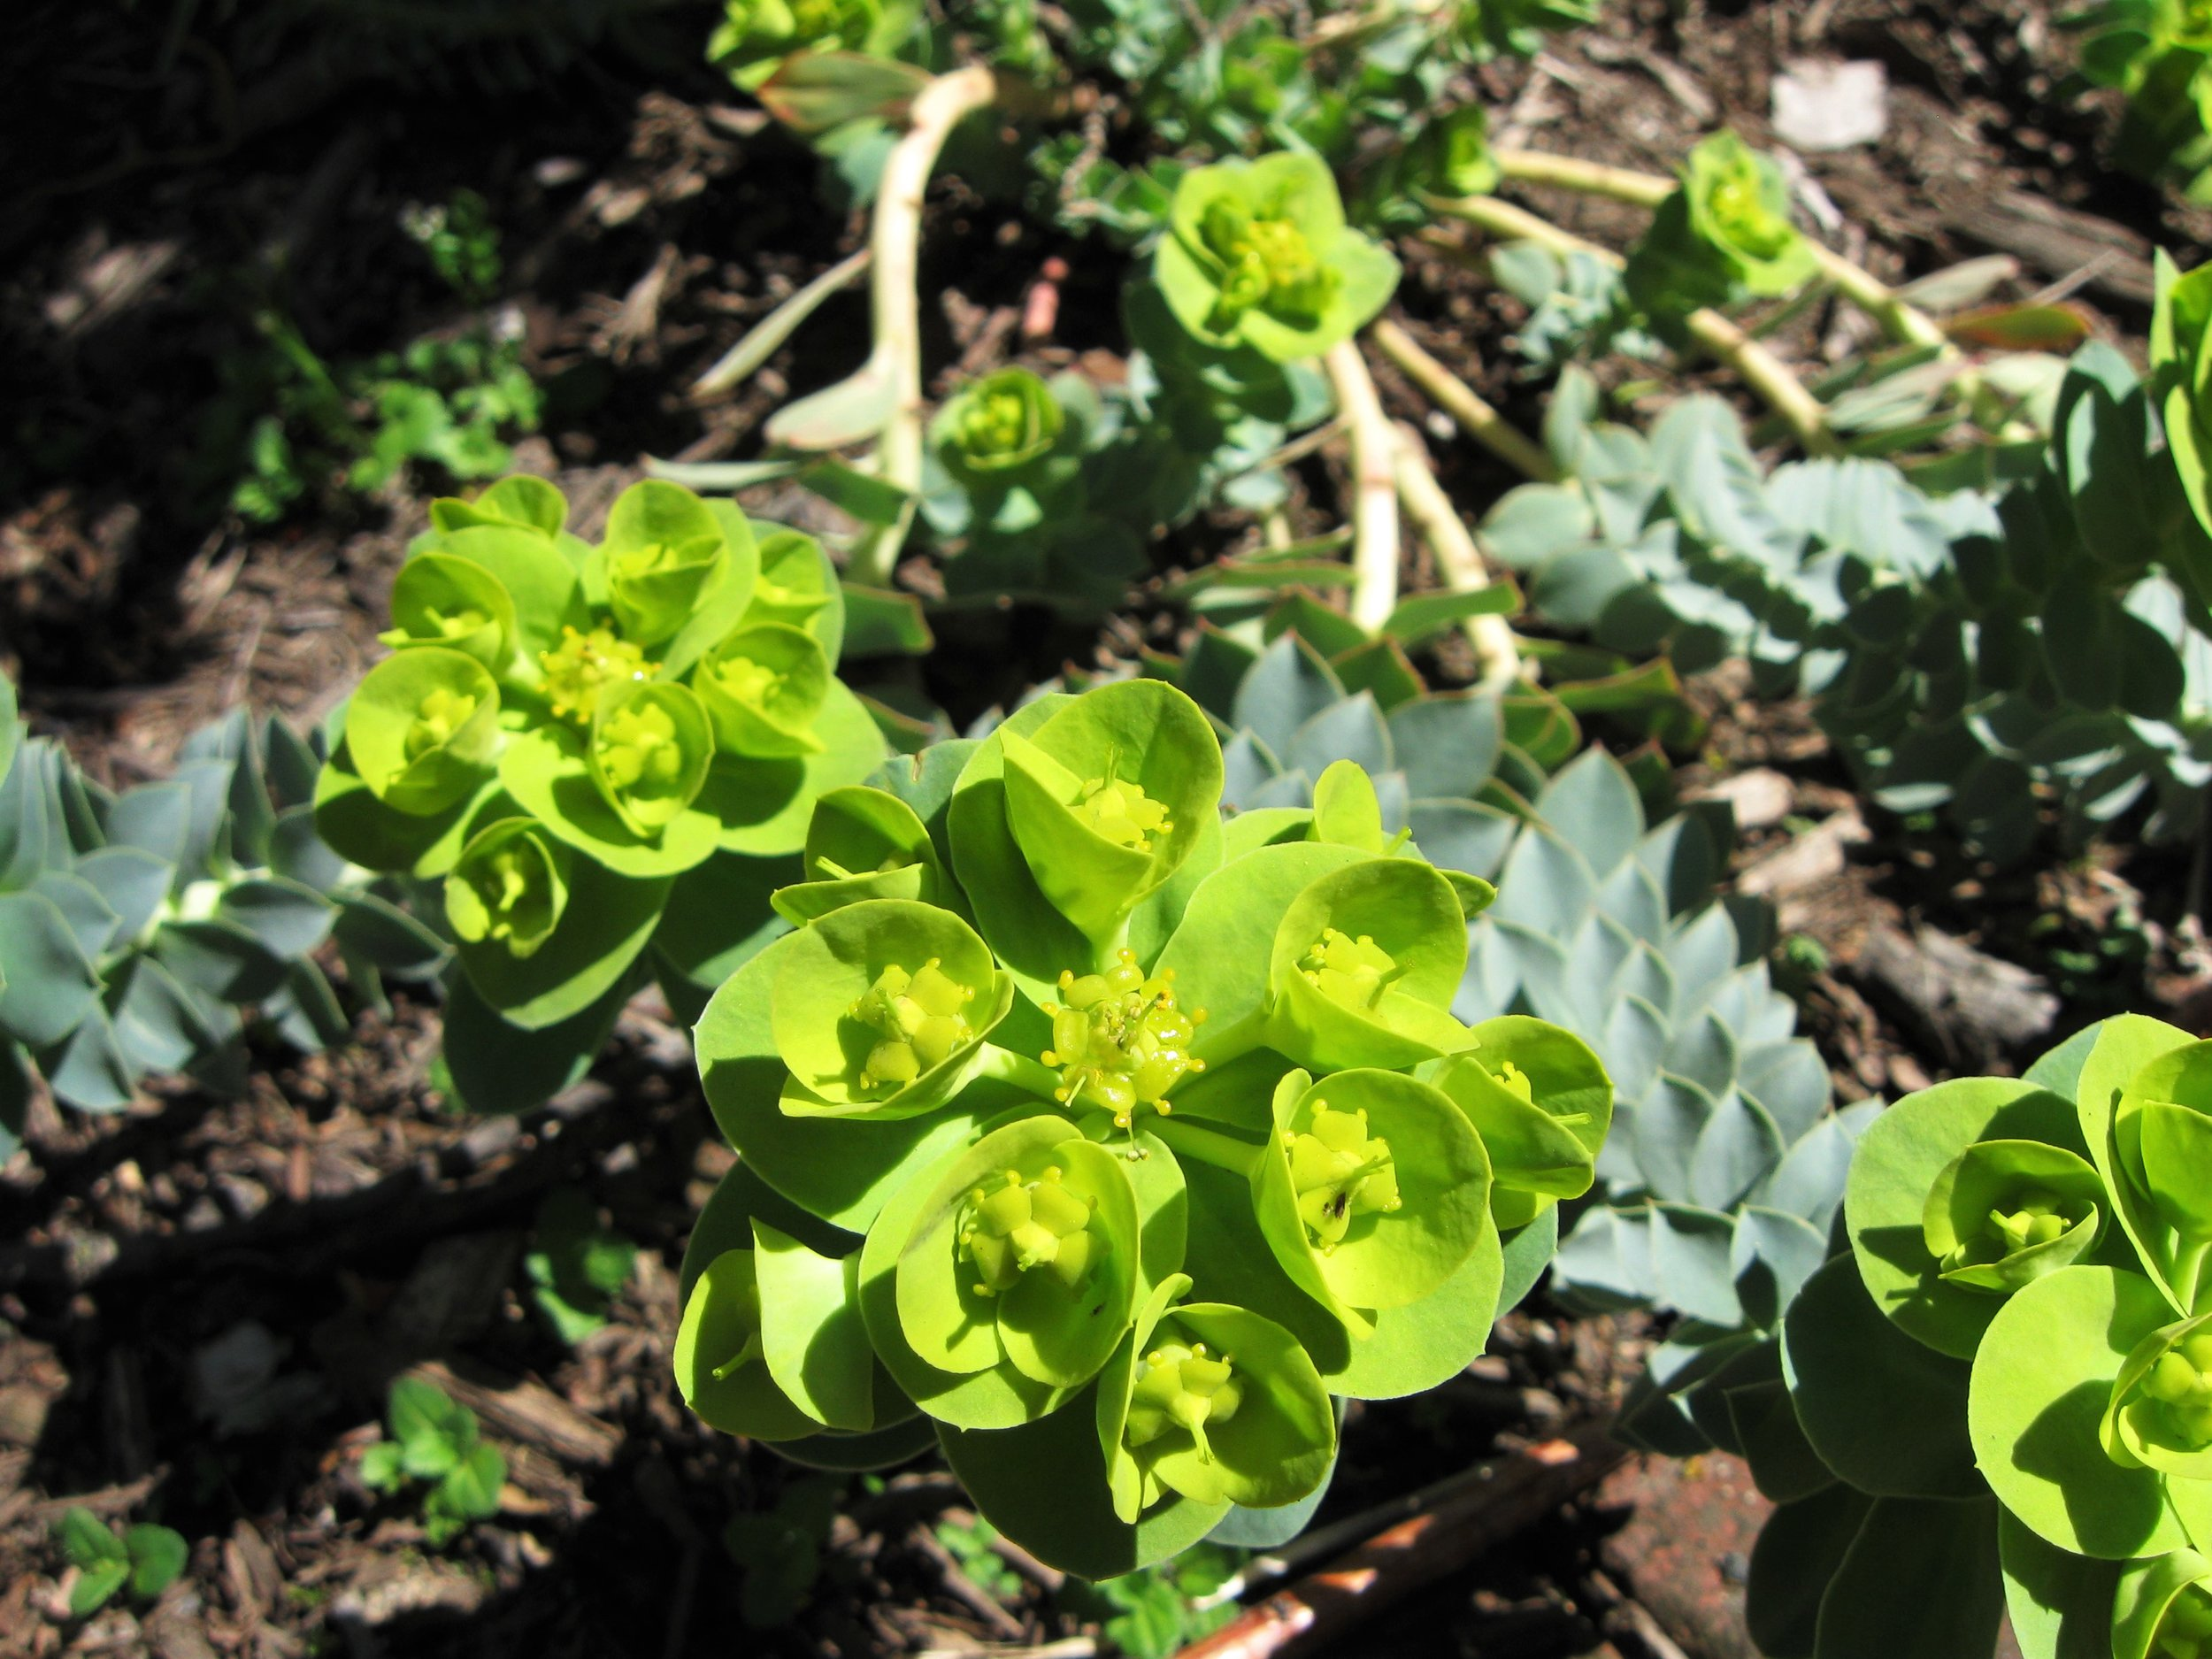 Euphorbia  myrsinites L., a.k.a. Myrtle spurge, which sounds like a character from Anne of Green Gables.